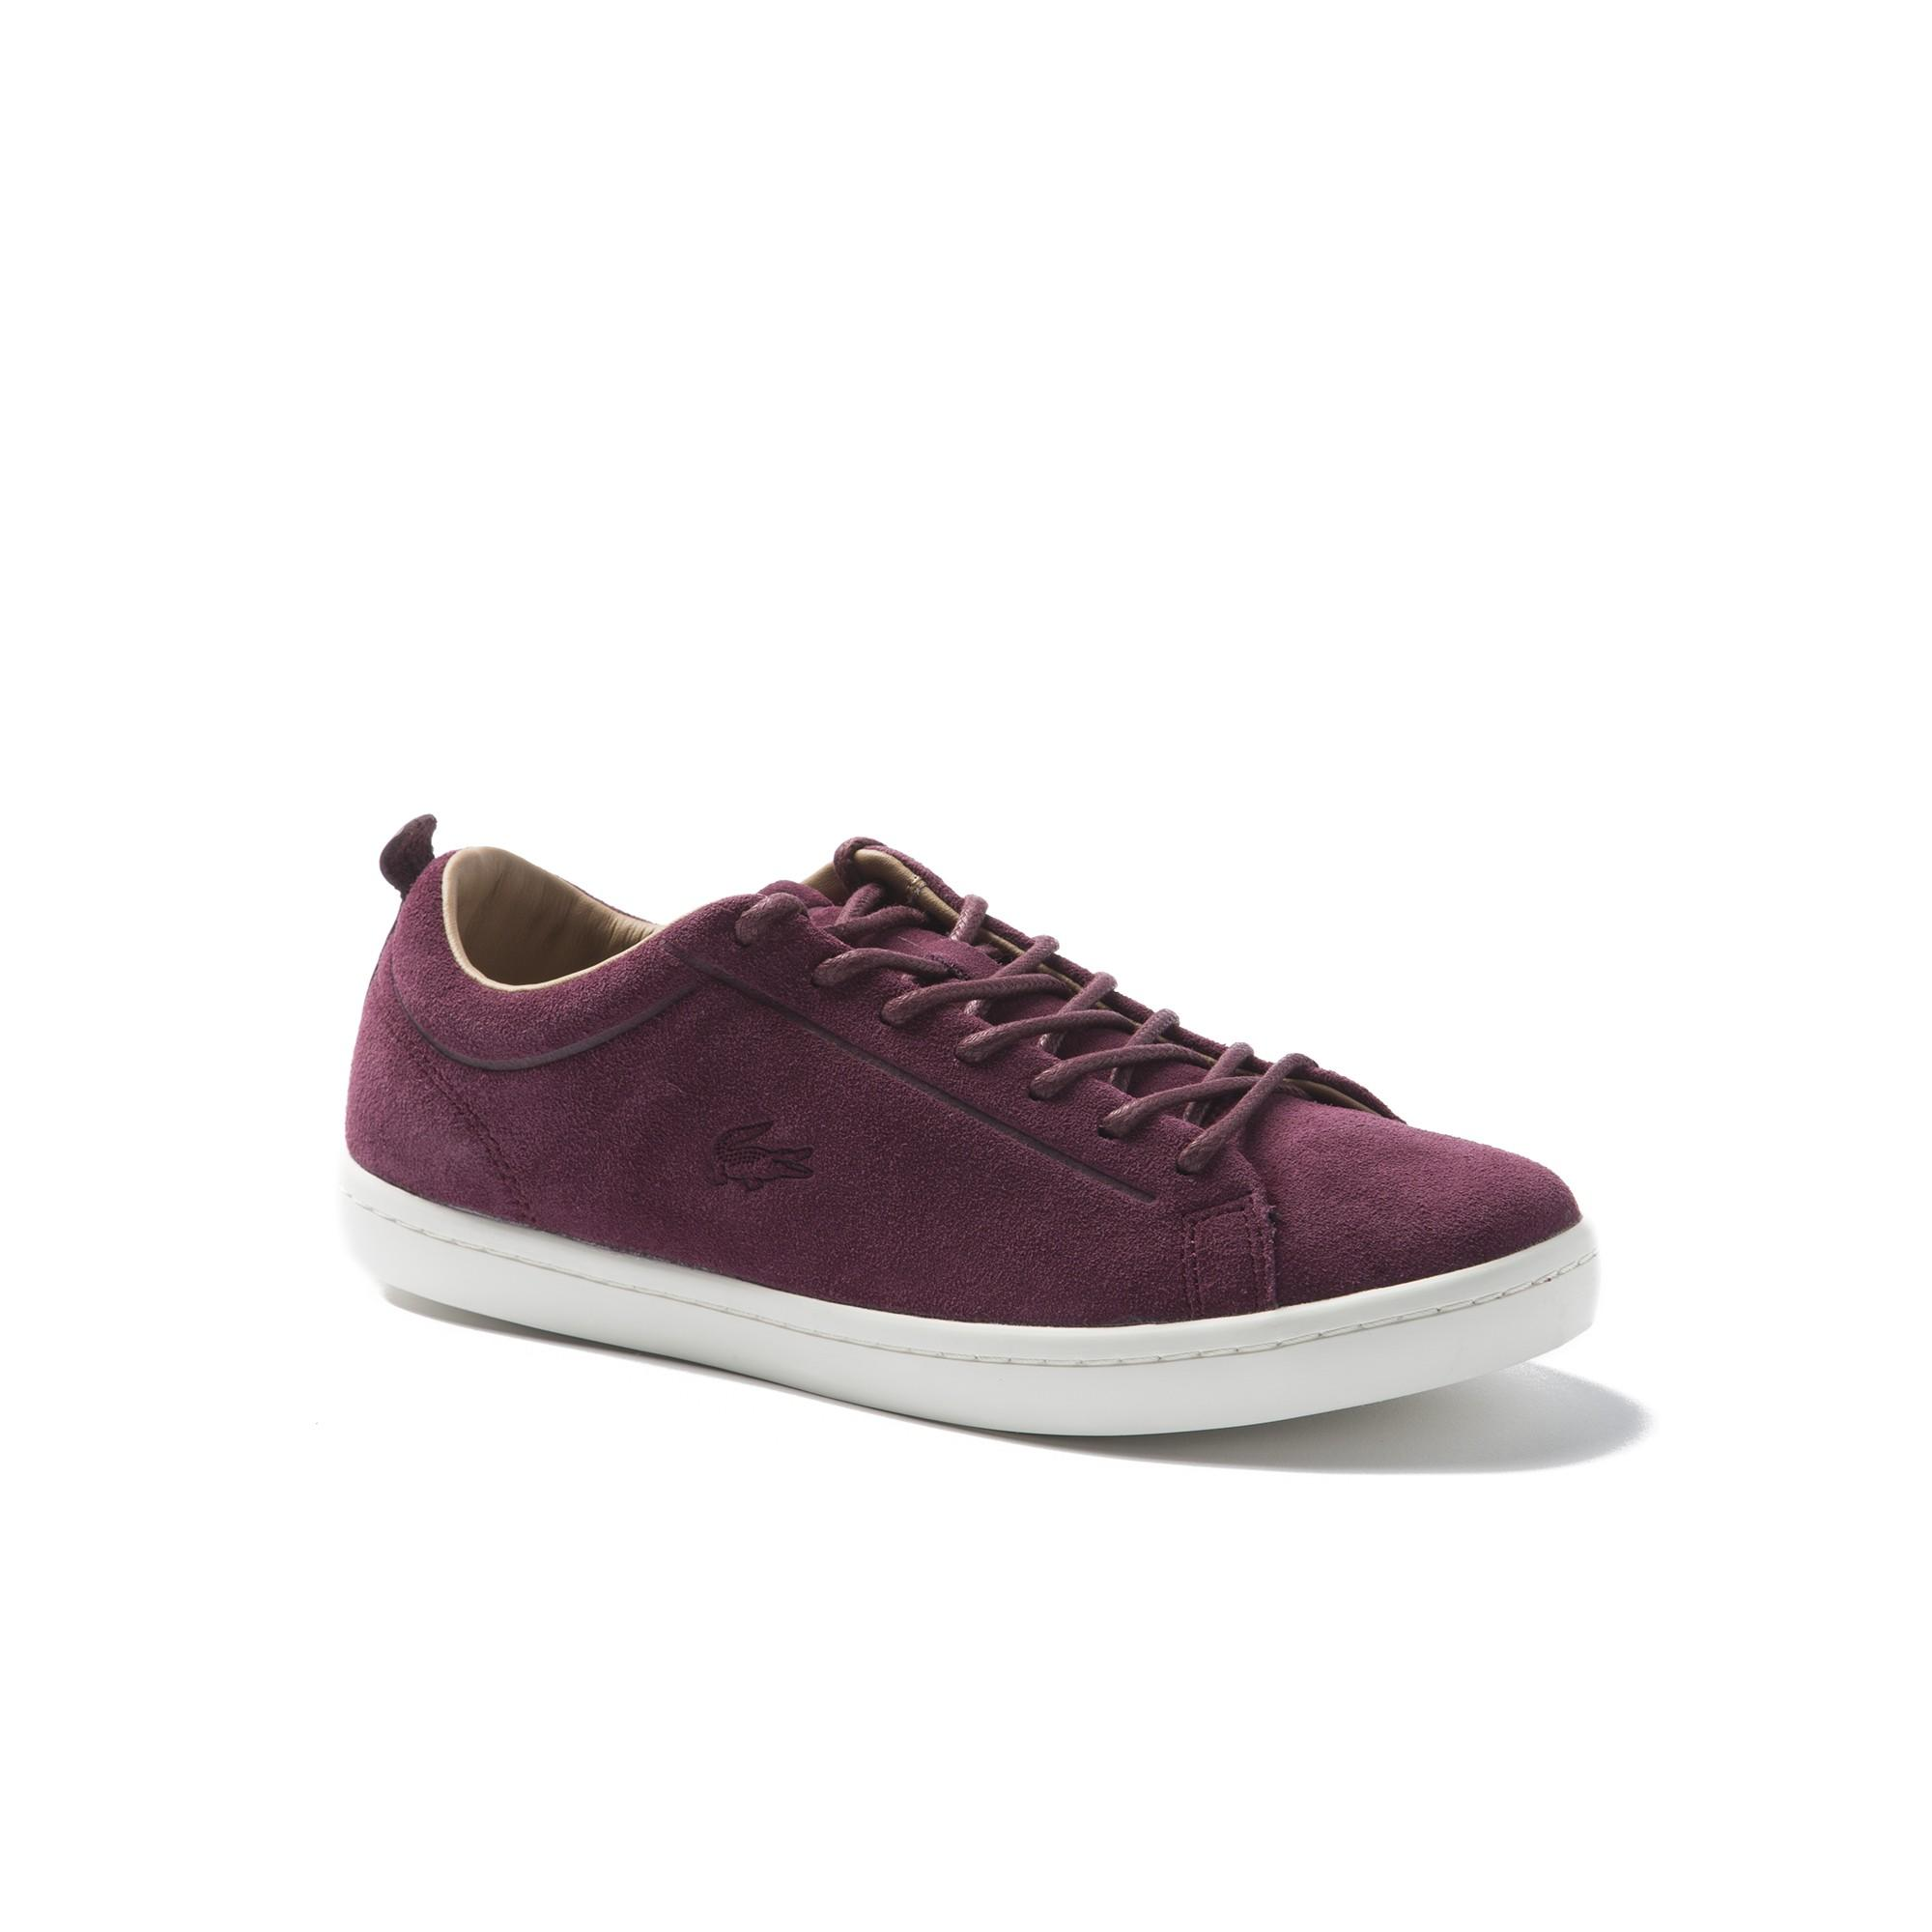 6fc4b5472 Lacoste Men s Straightset Suede Sneakers In Burgundy